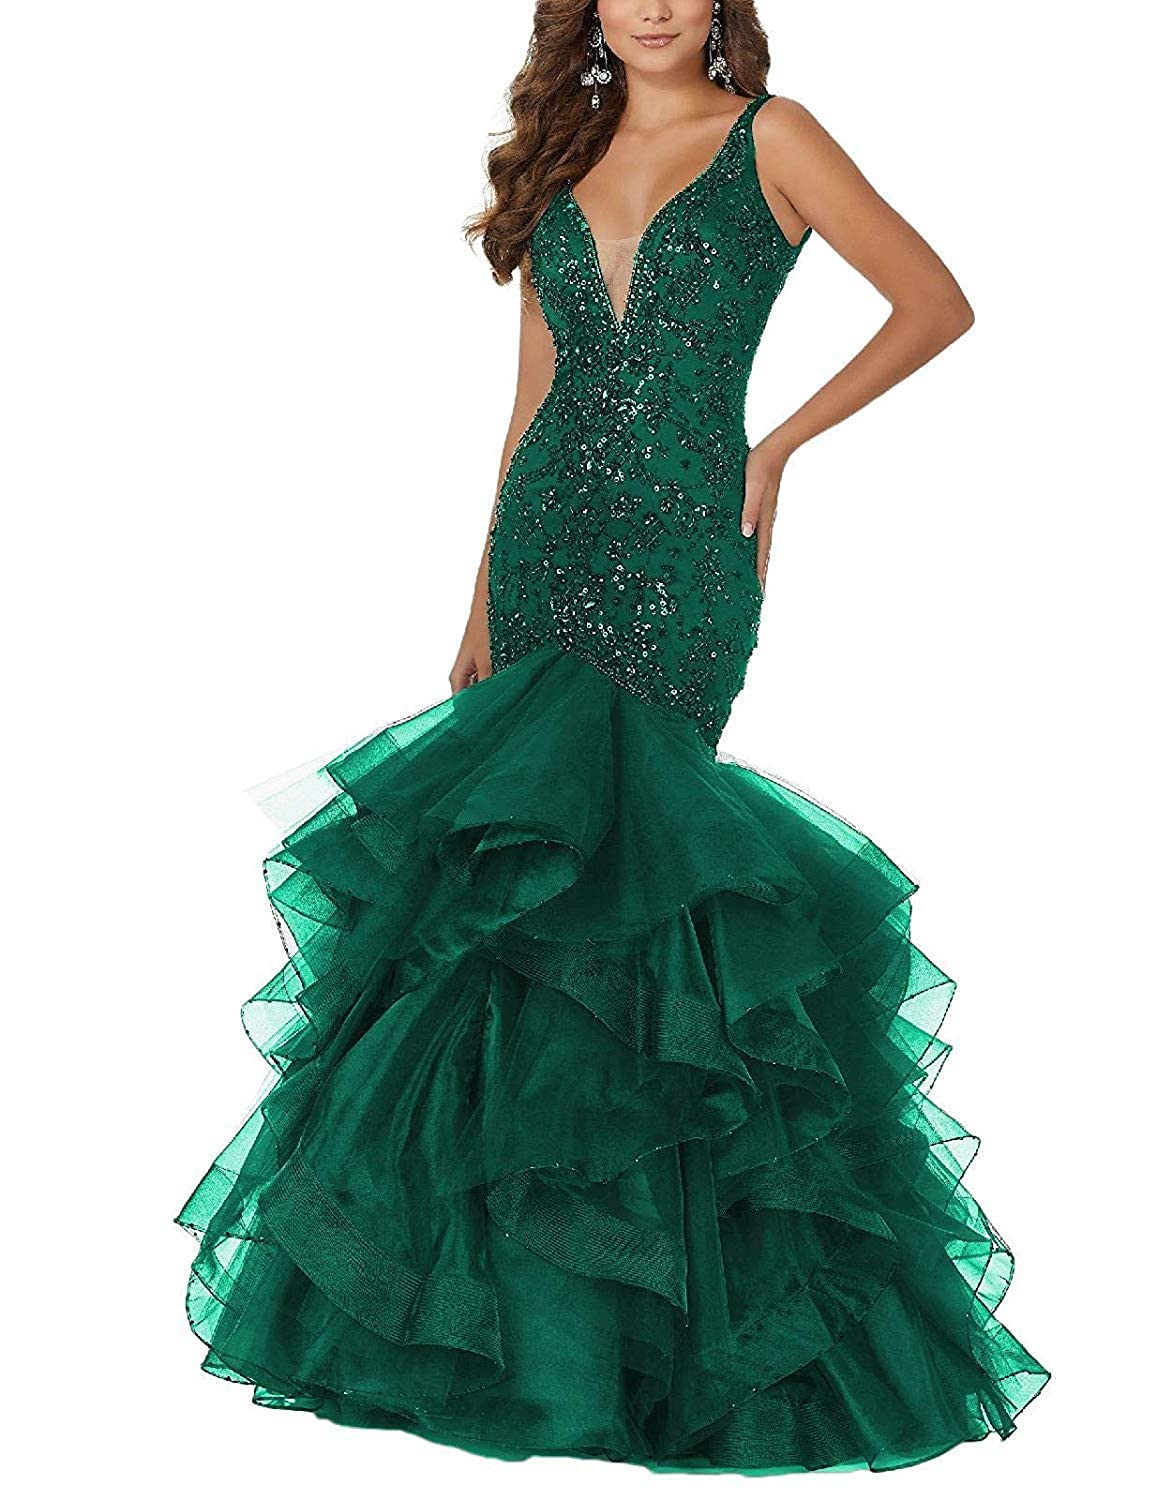 Dark Green PearlBridal Women's Beaded Sequins Mermaid Lace Long Prom Dresses Ruffles Evening Ball Gowns